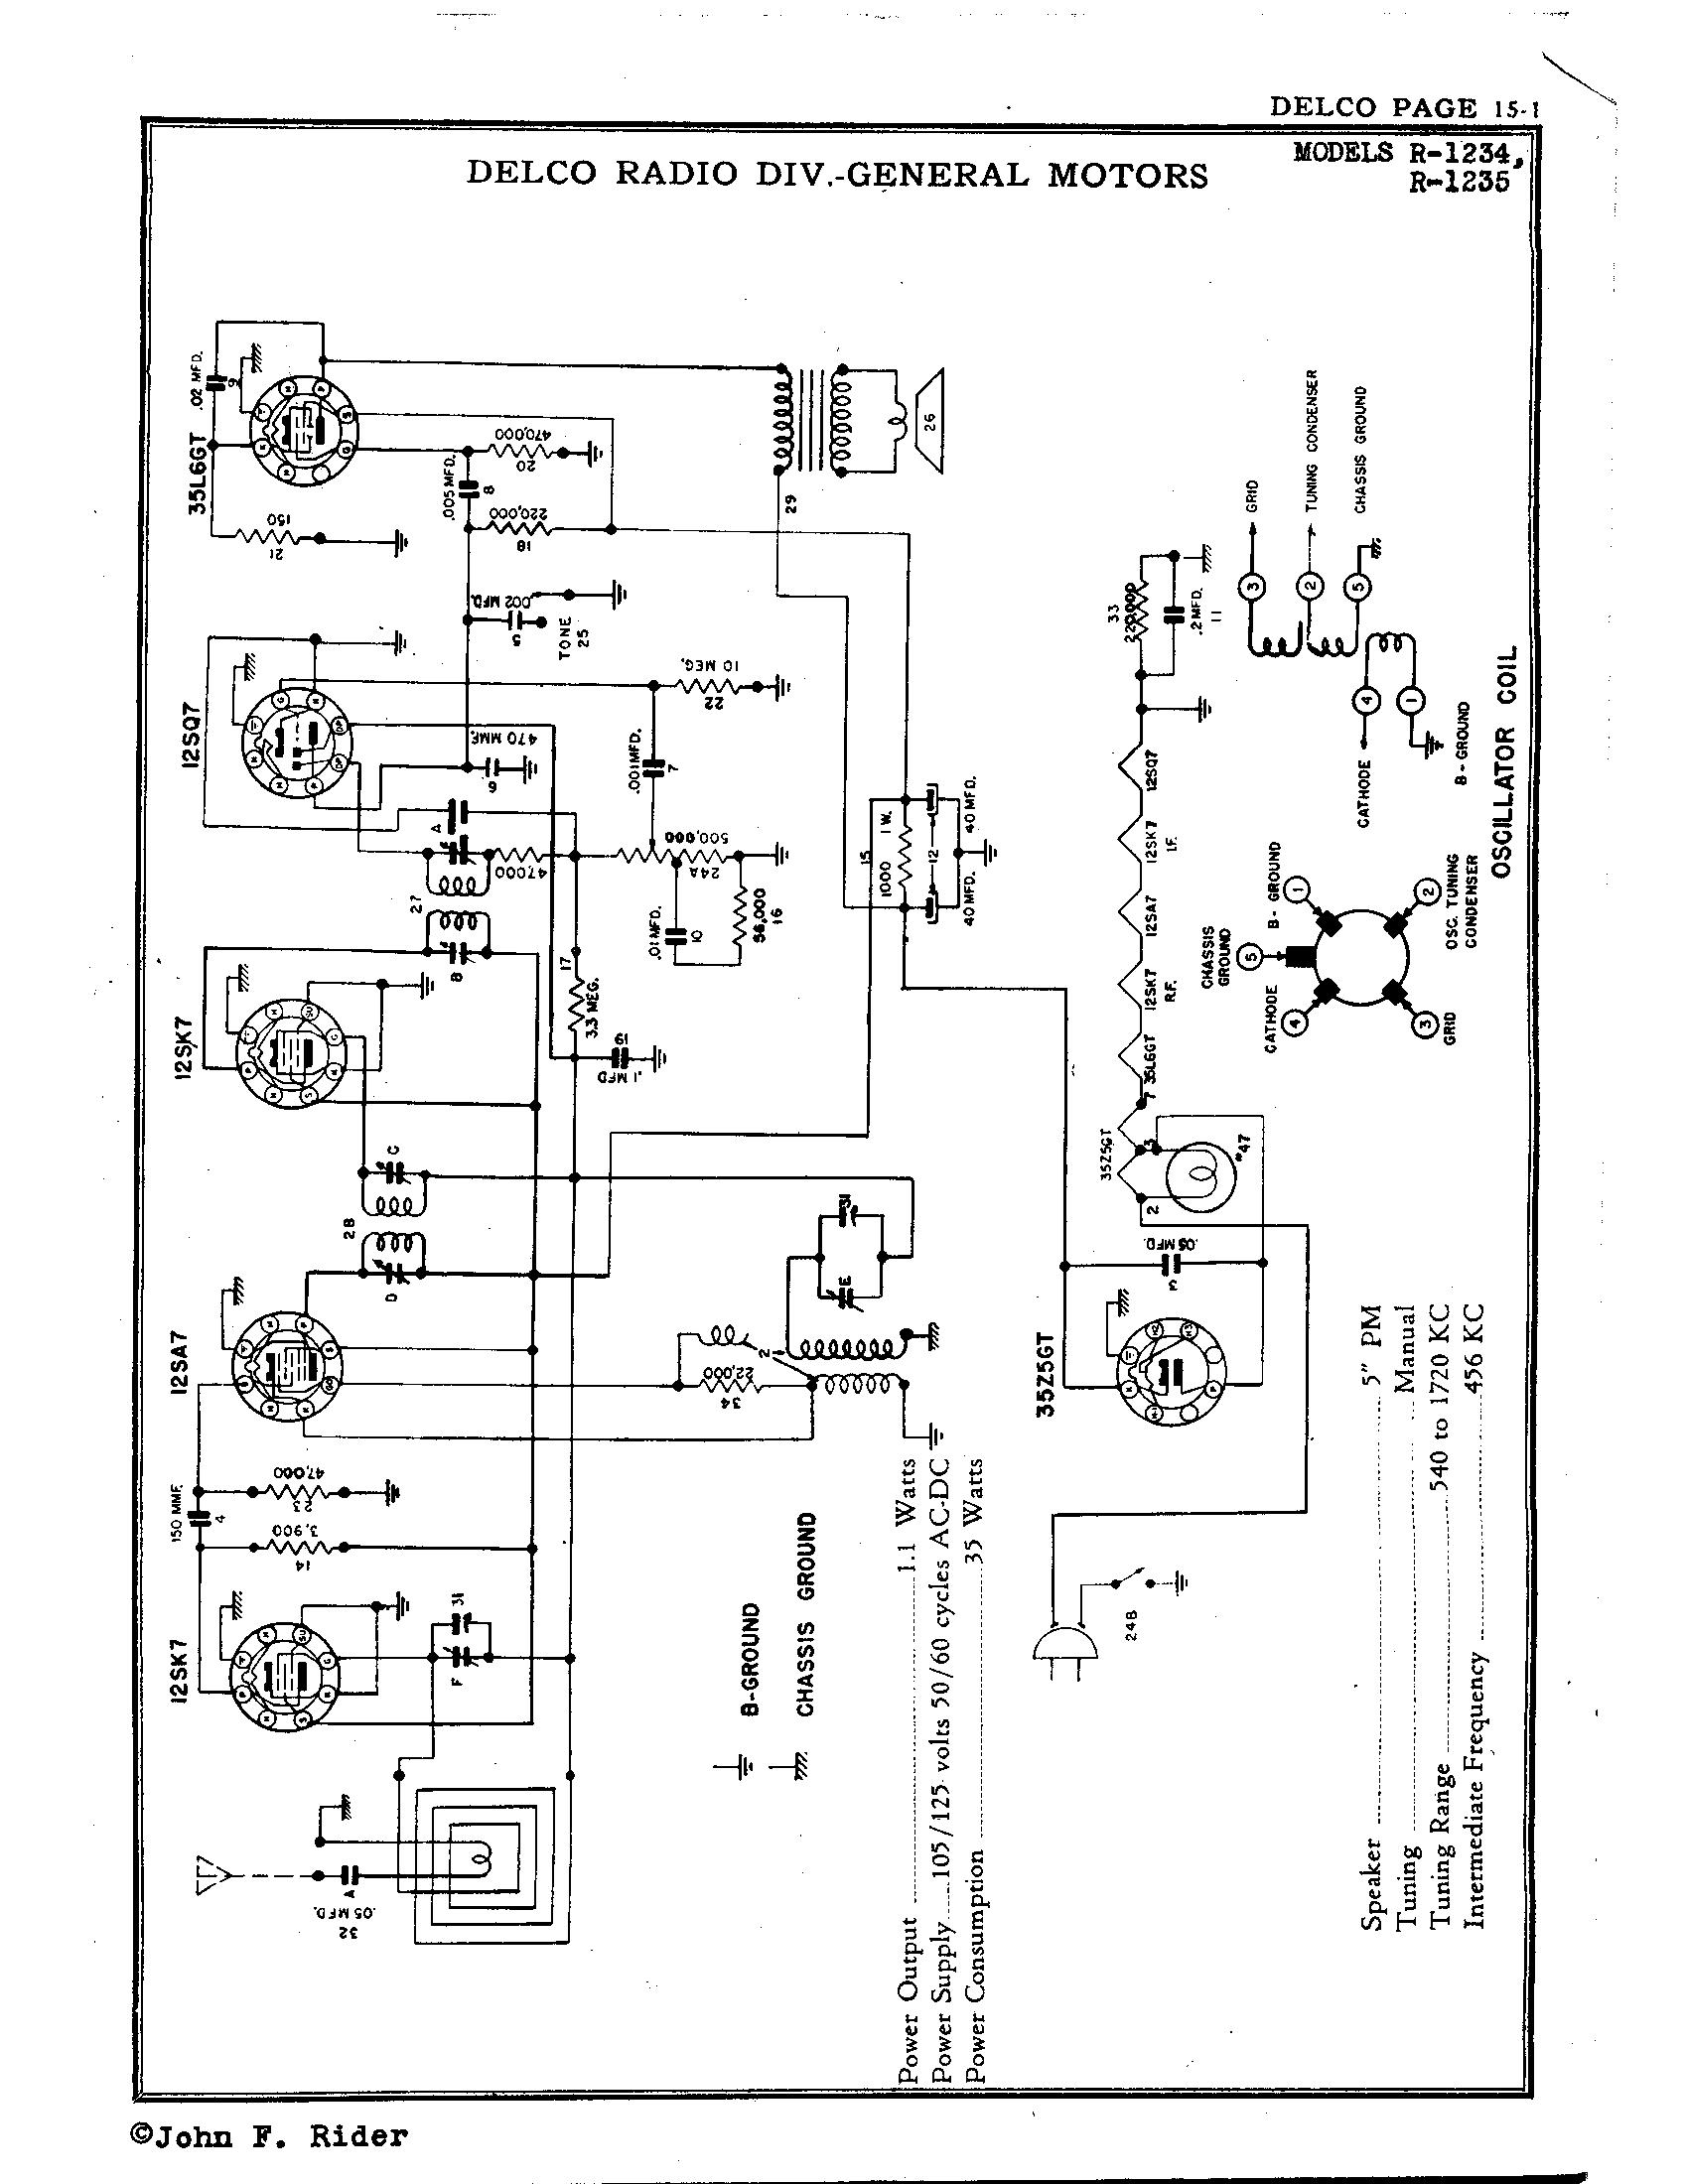 Gm Radio Wiring Diagram Schematic Auto Electrical Delco Car Stereo 2002 Related With